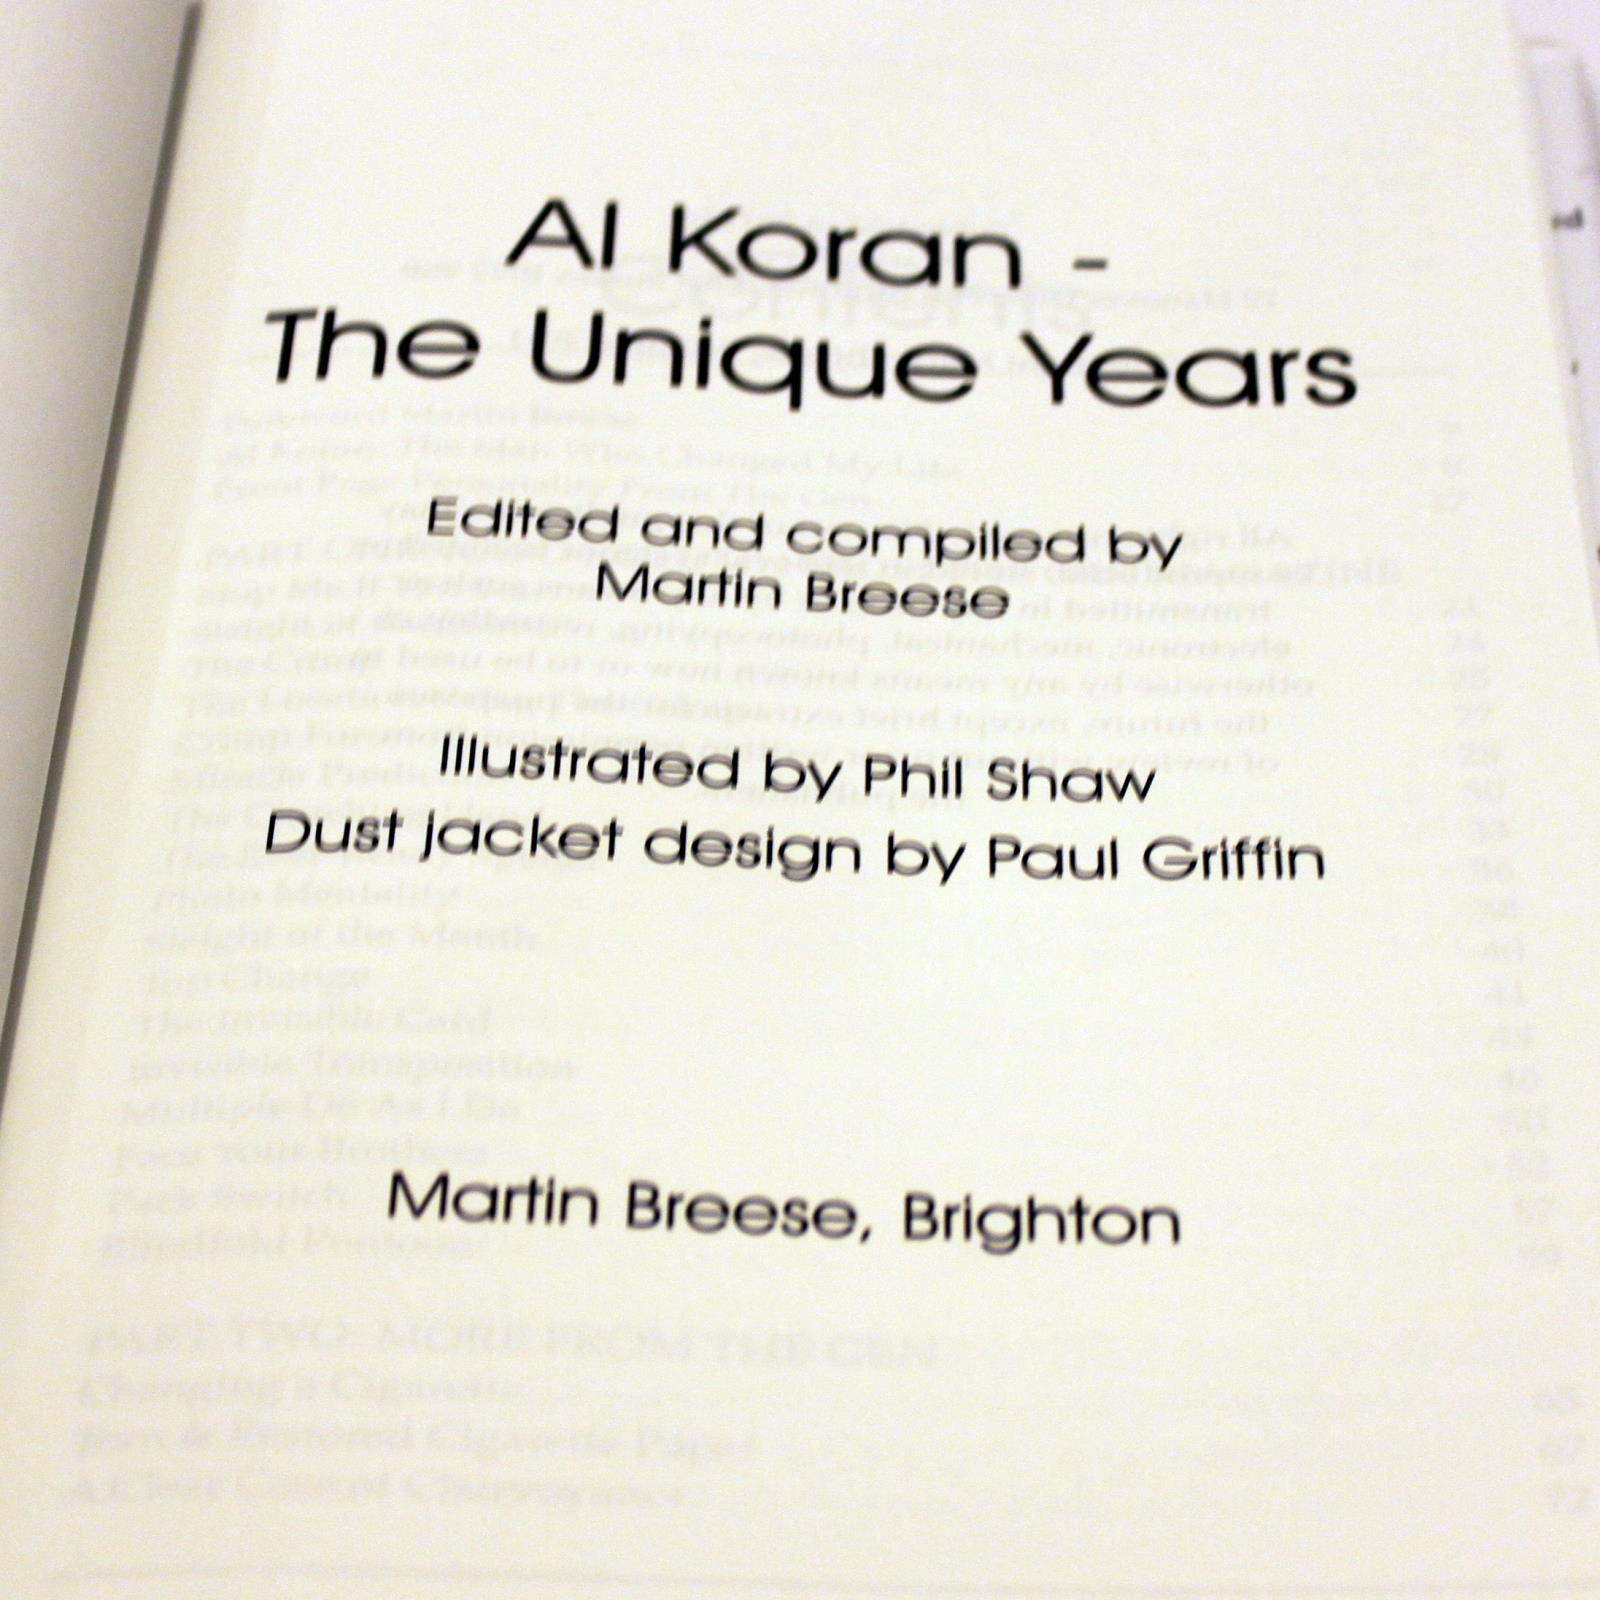 Al Koran - The Unique Years by Martin Breese